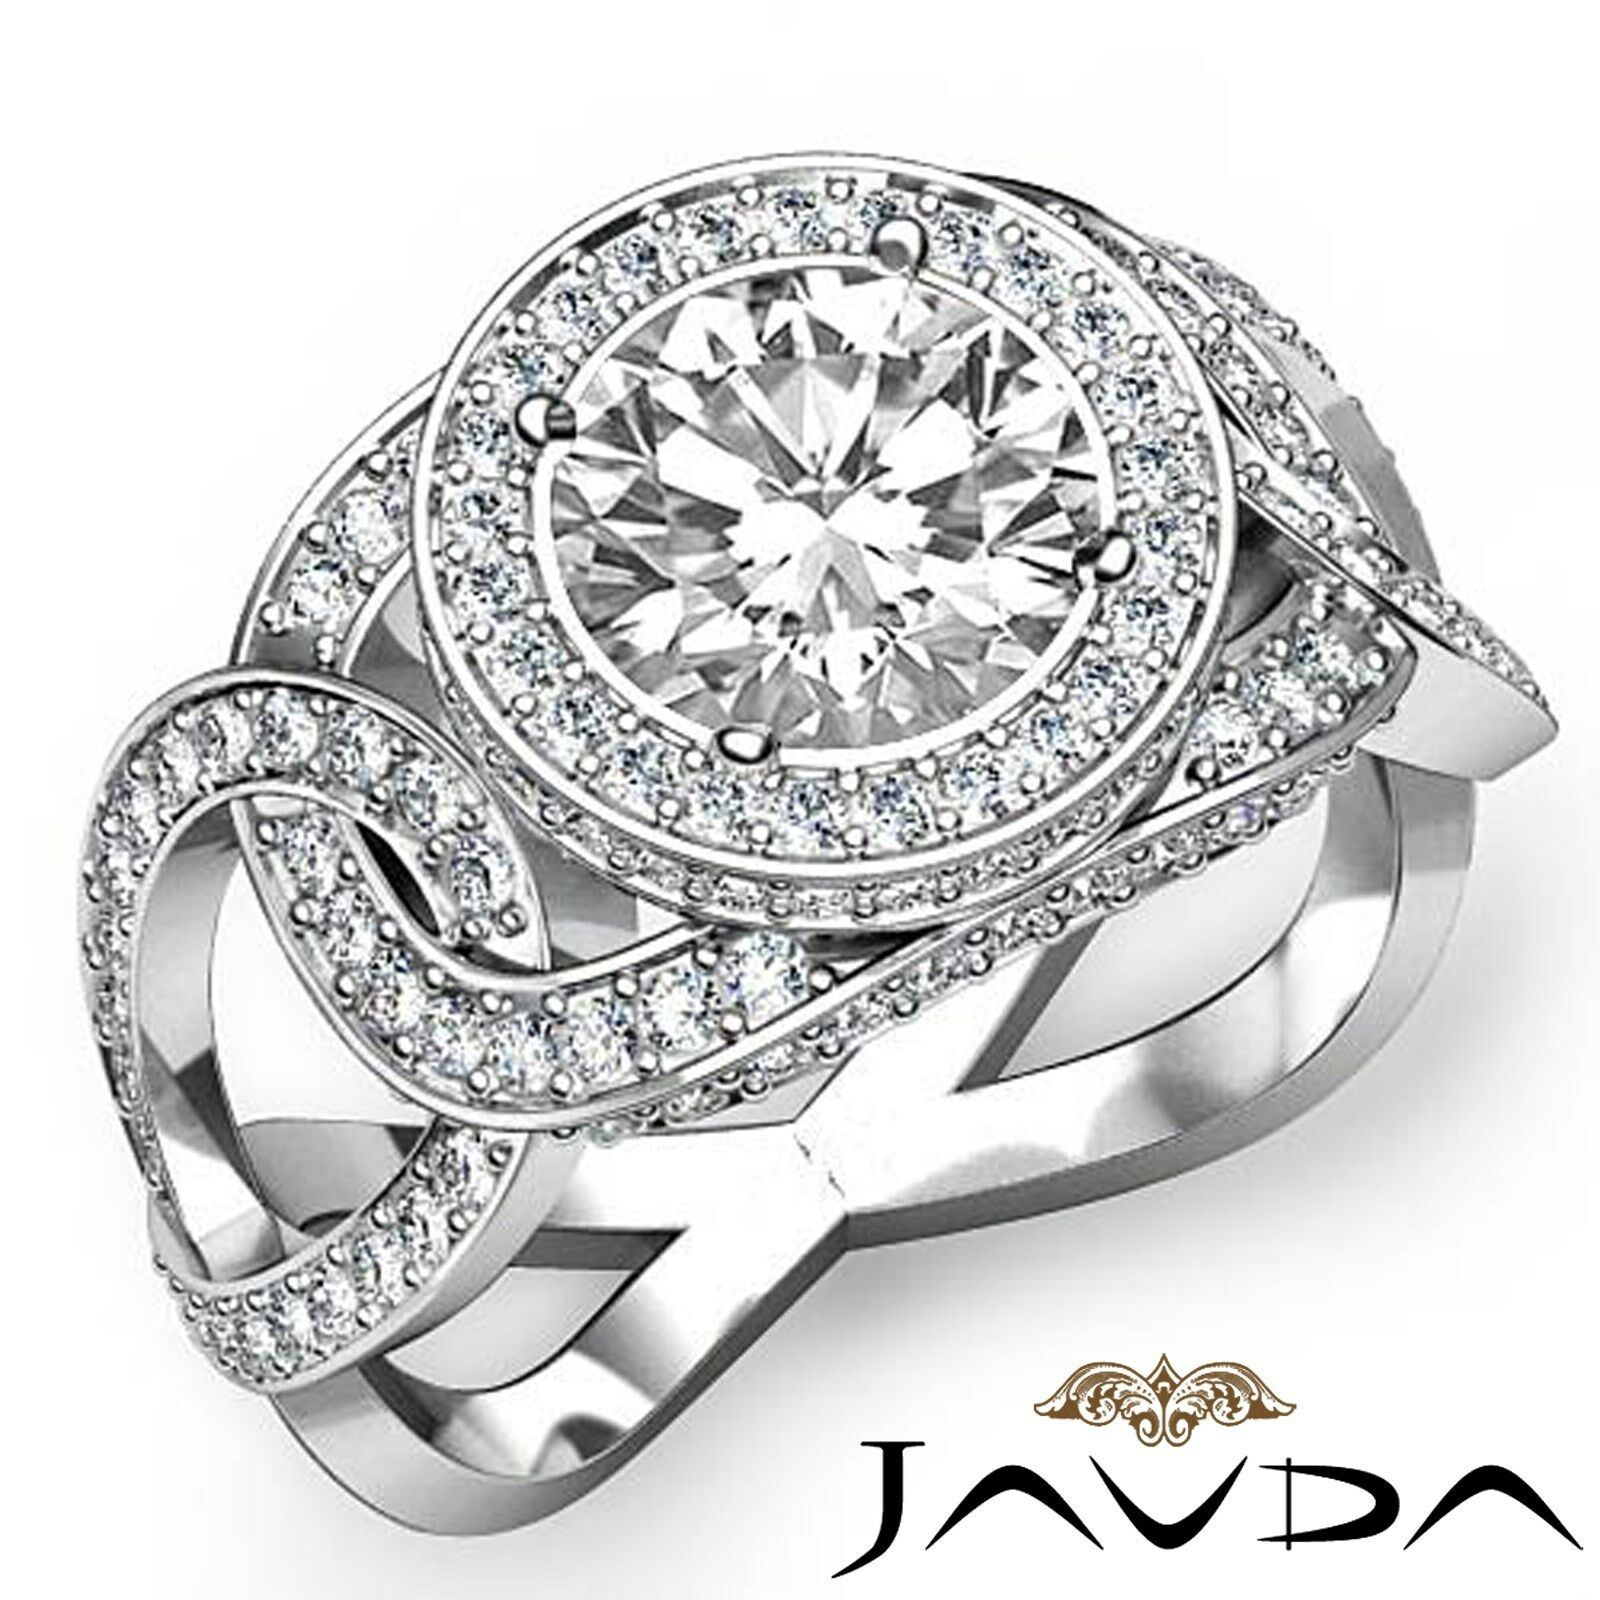 Twisted Halo Pave Set Round Diamond Engagement Anniversary Ring GIA H VS1 2.8Ct